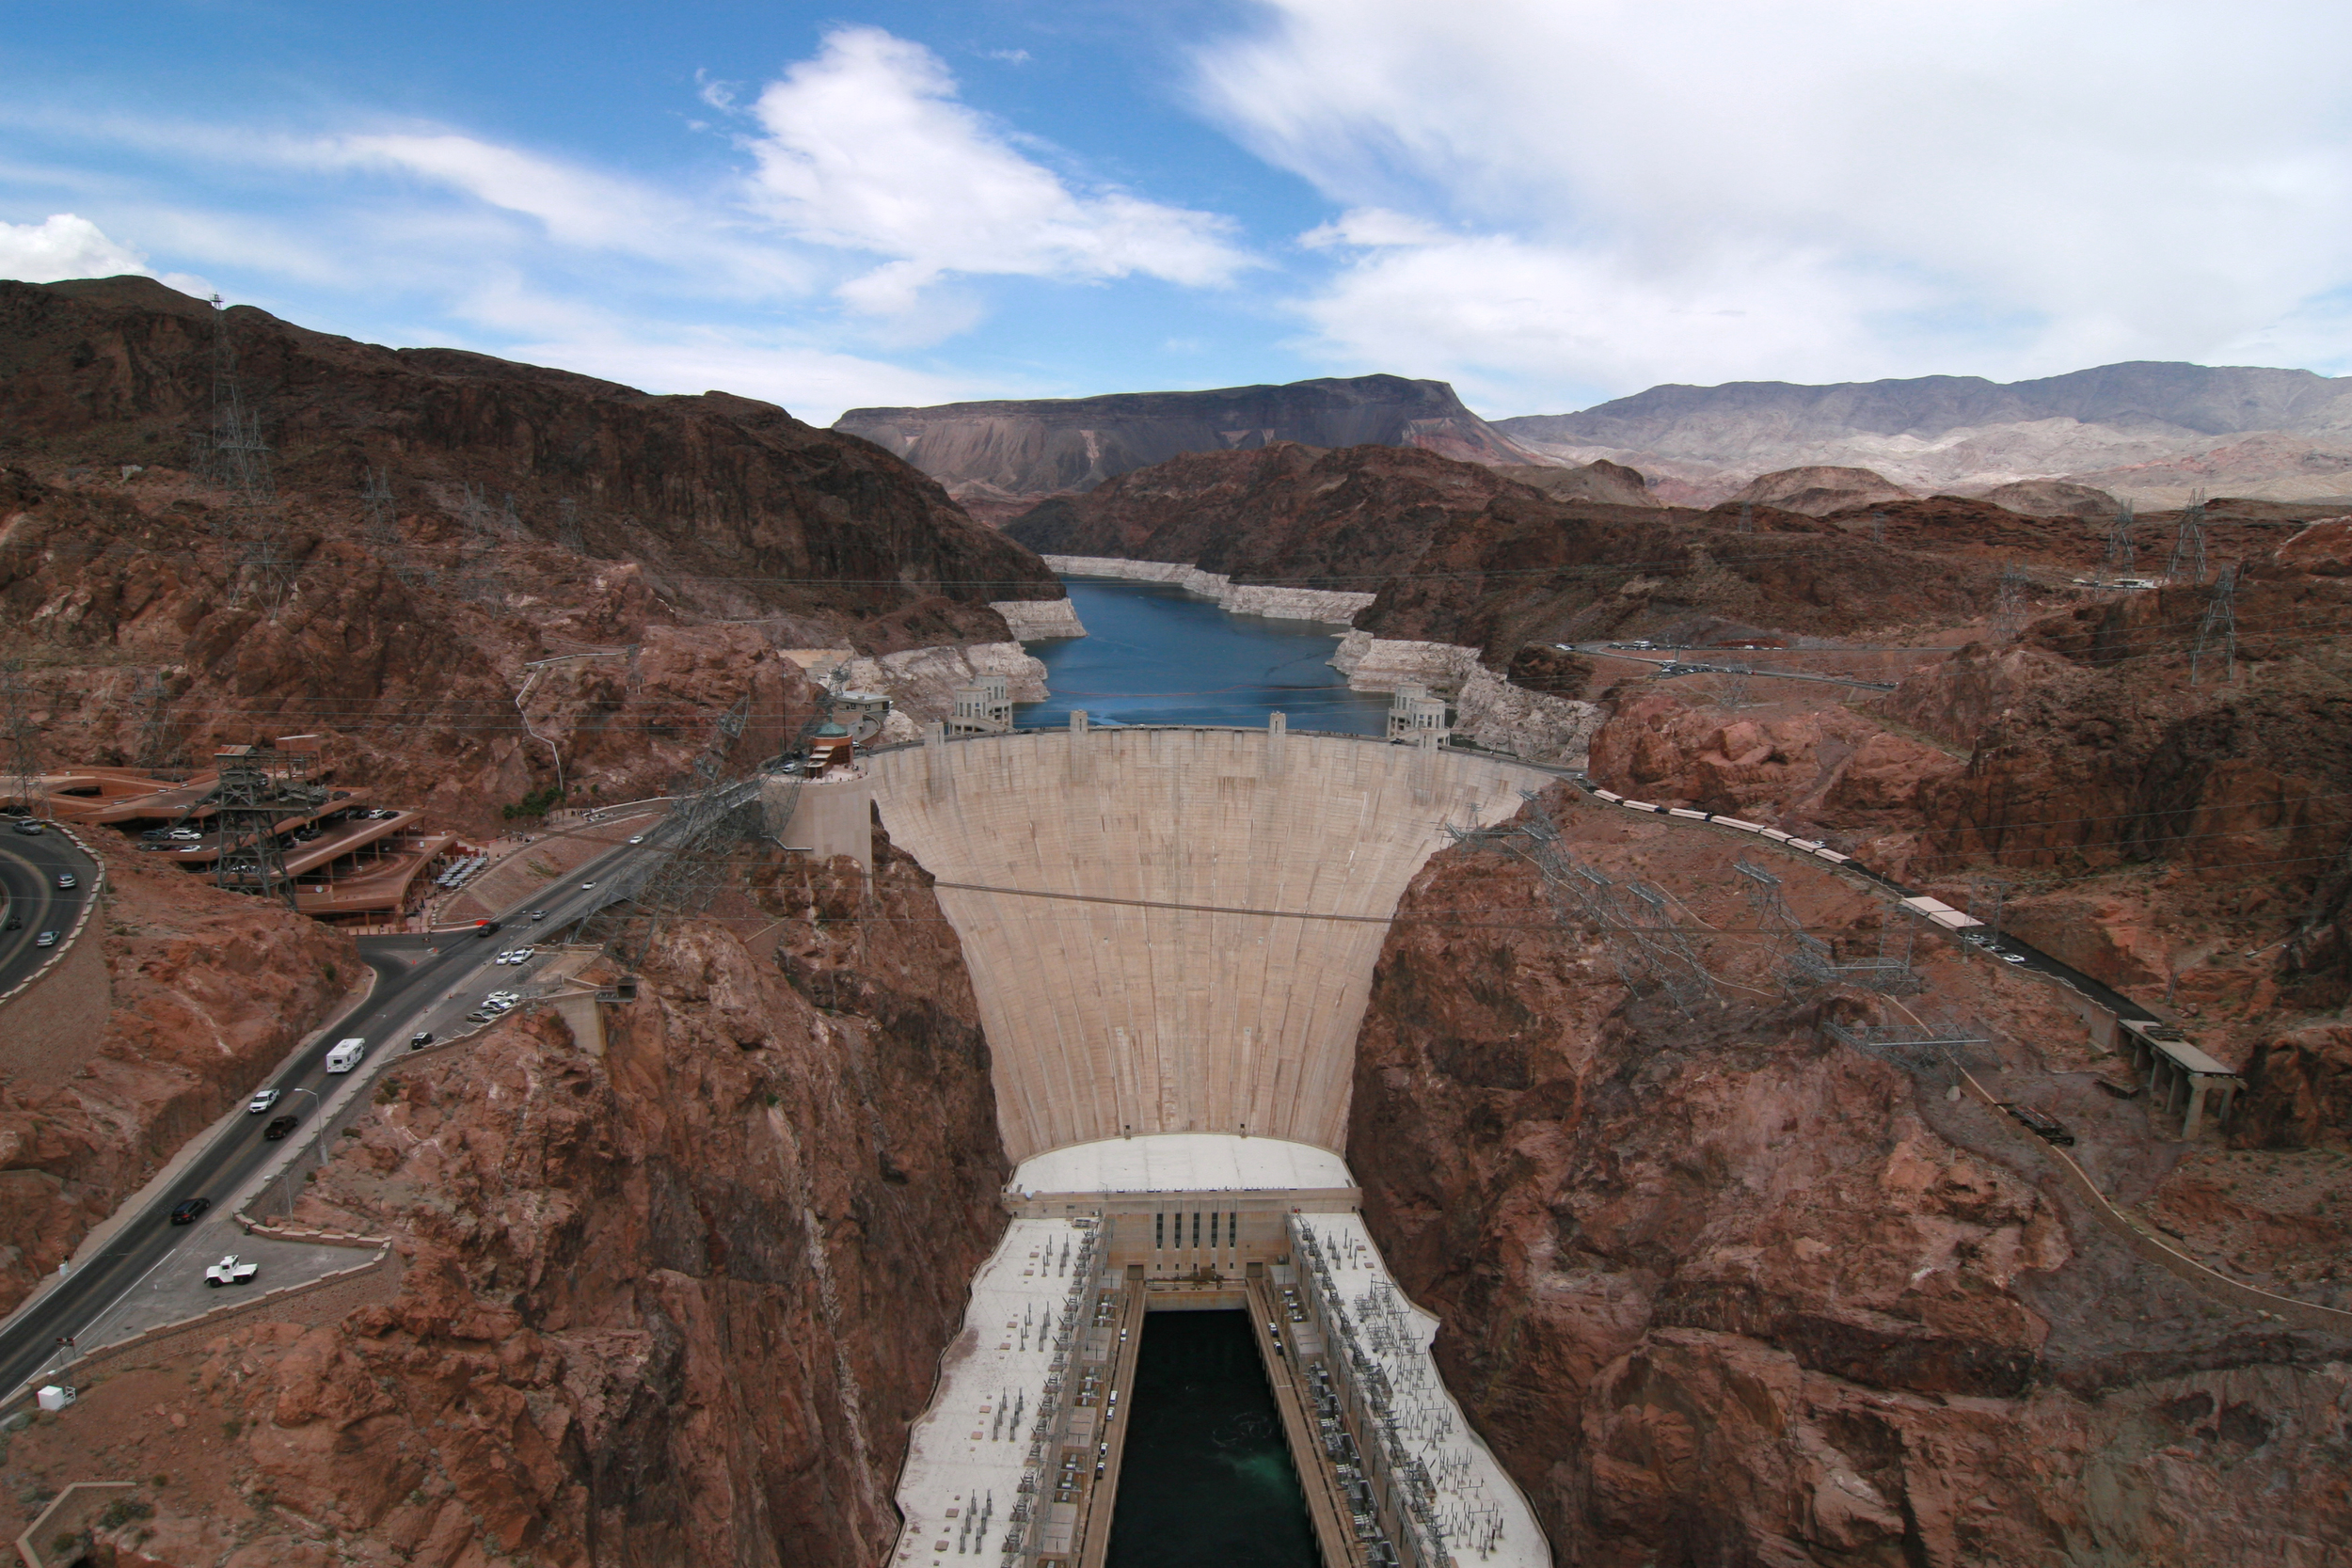 View of Hoover Dam and US Highway 93 from the Mike O'Callaghan–Pat Tillman Memorial Bridge in the Lake Mead National Recreation Area.